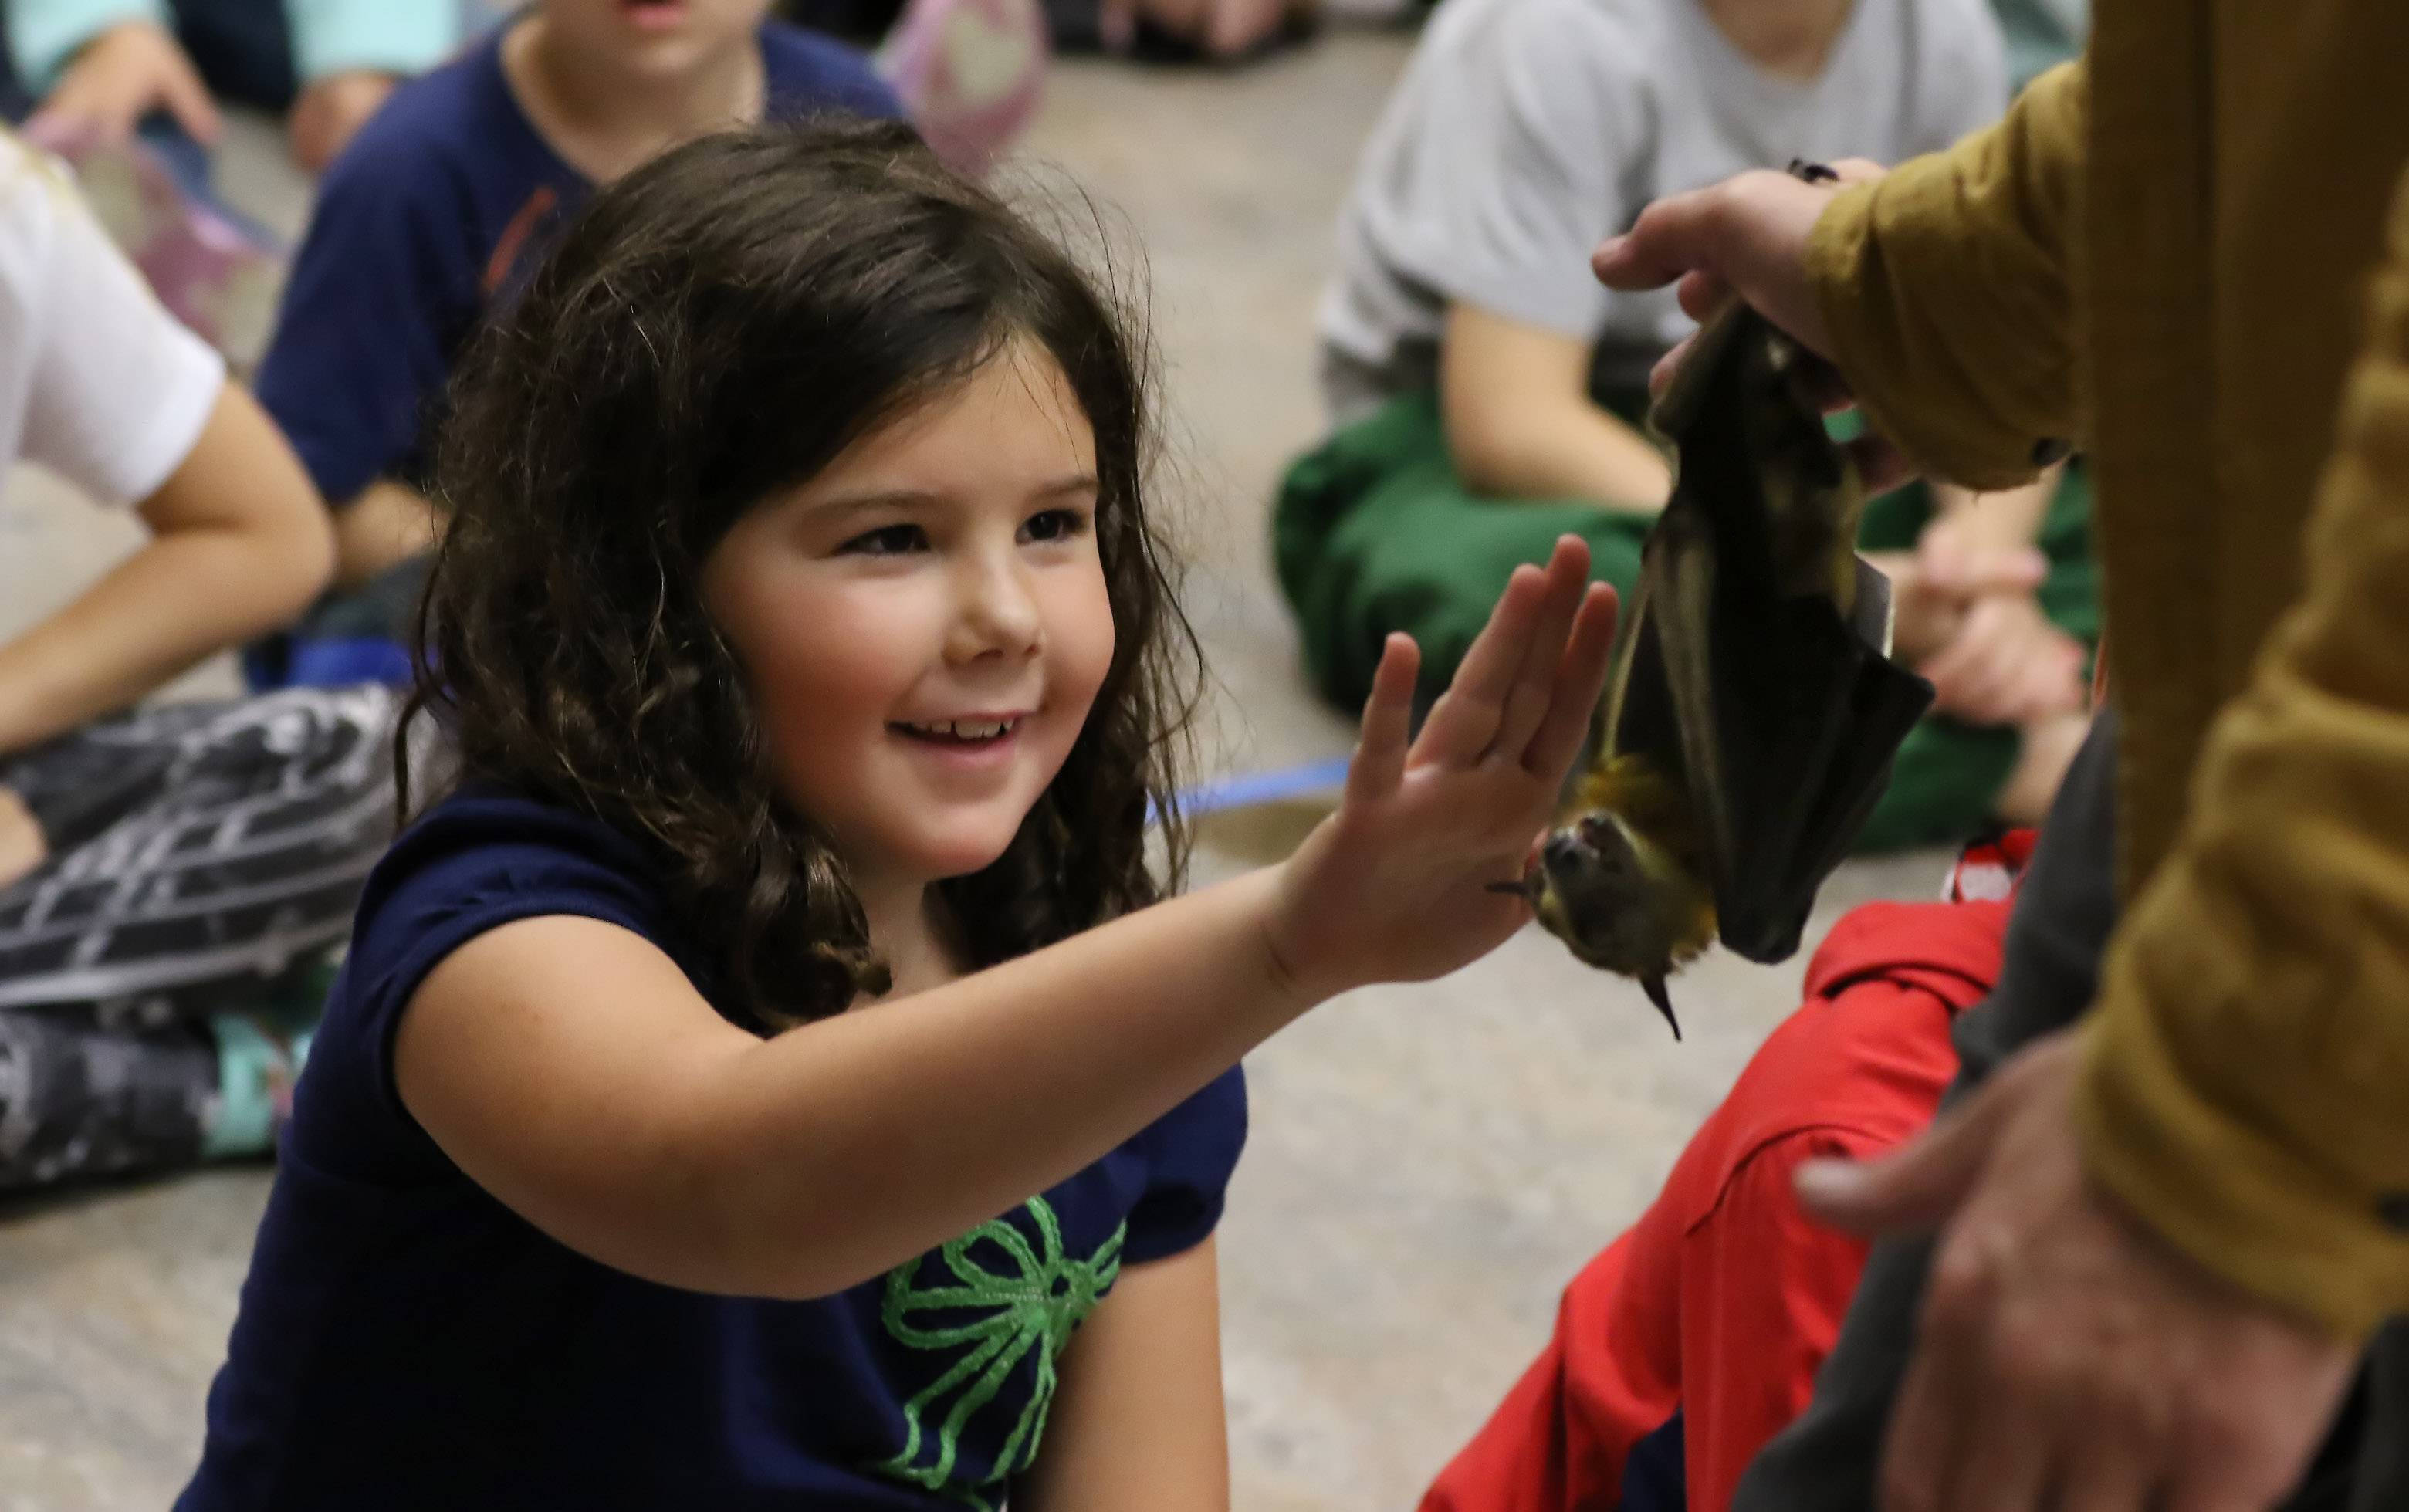 Abbi Jens, 6, reaches out to touch a fruit bat Sunday during the Mammals and More! program at the Grayslake Area Public Library. Scott Heinrichs and Christine Gomoll of the Flying Fox Conservation Fund brought out a bat, armadillo, opossum, python, parrot and other animals for children to touch.